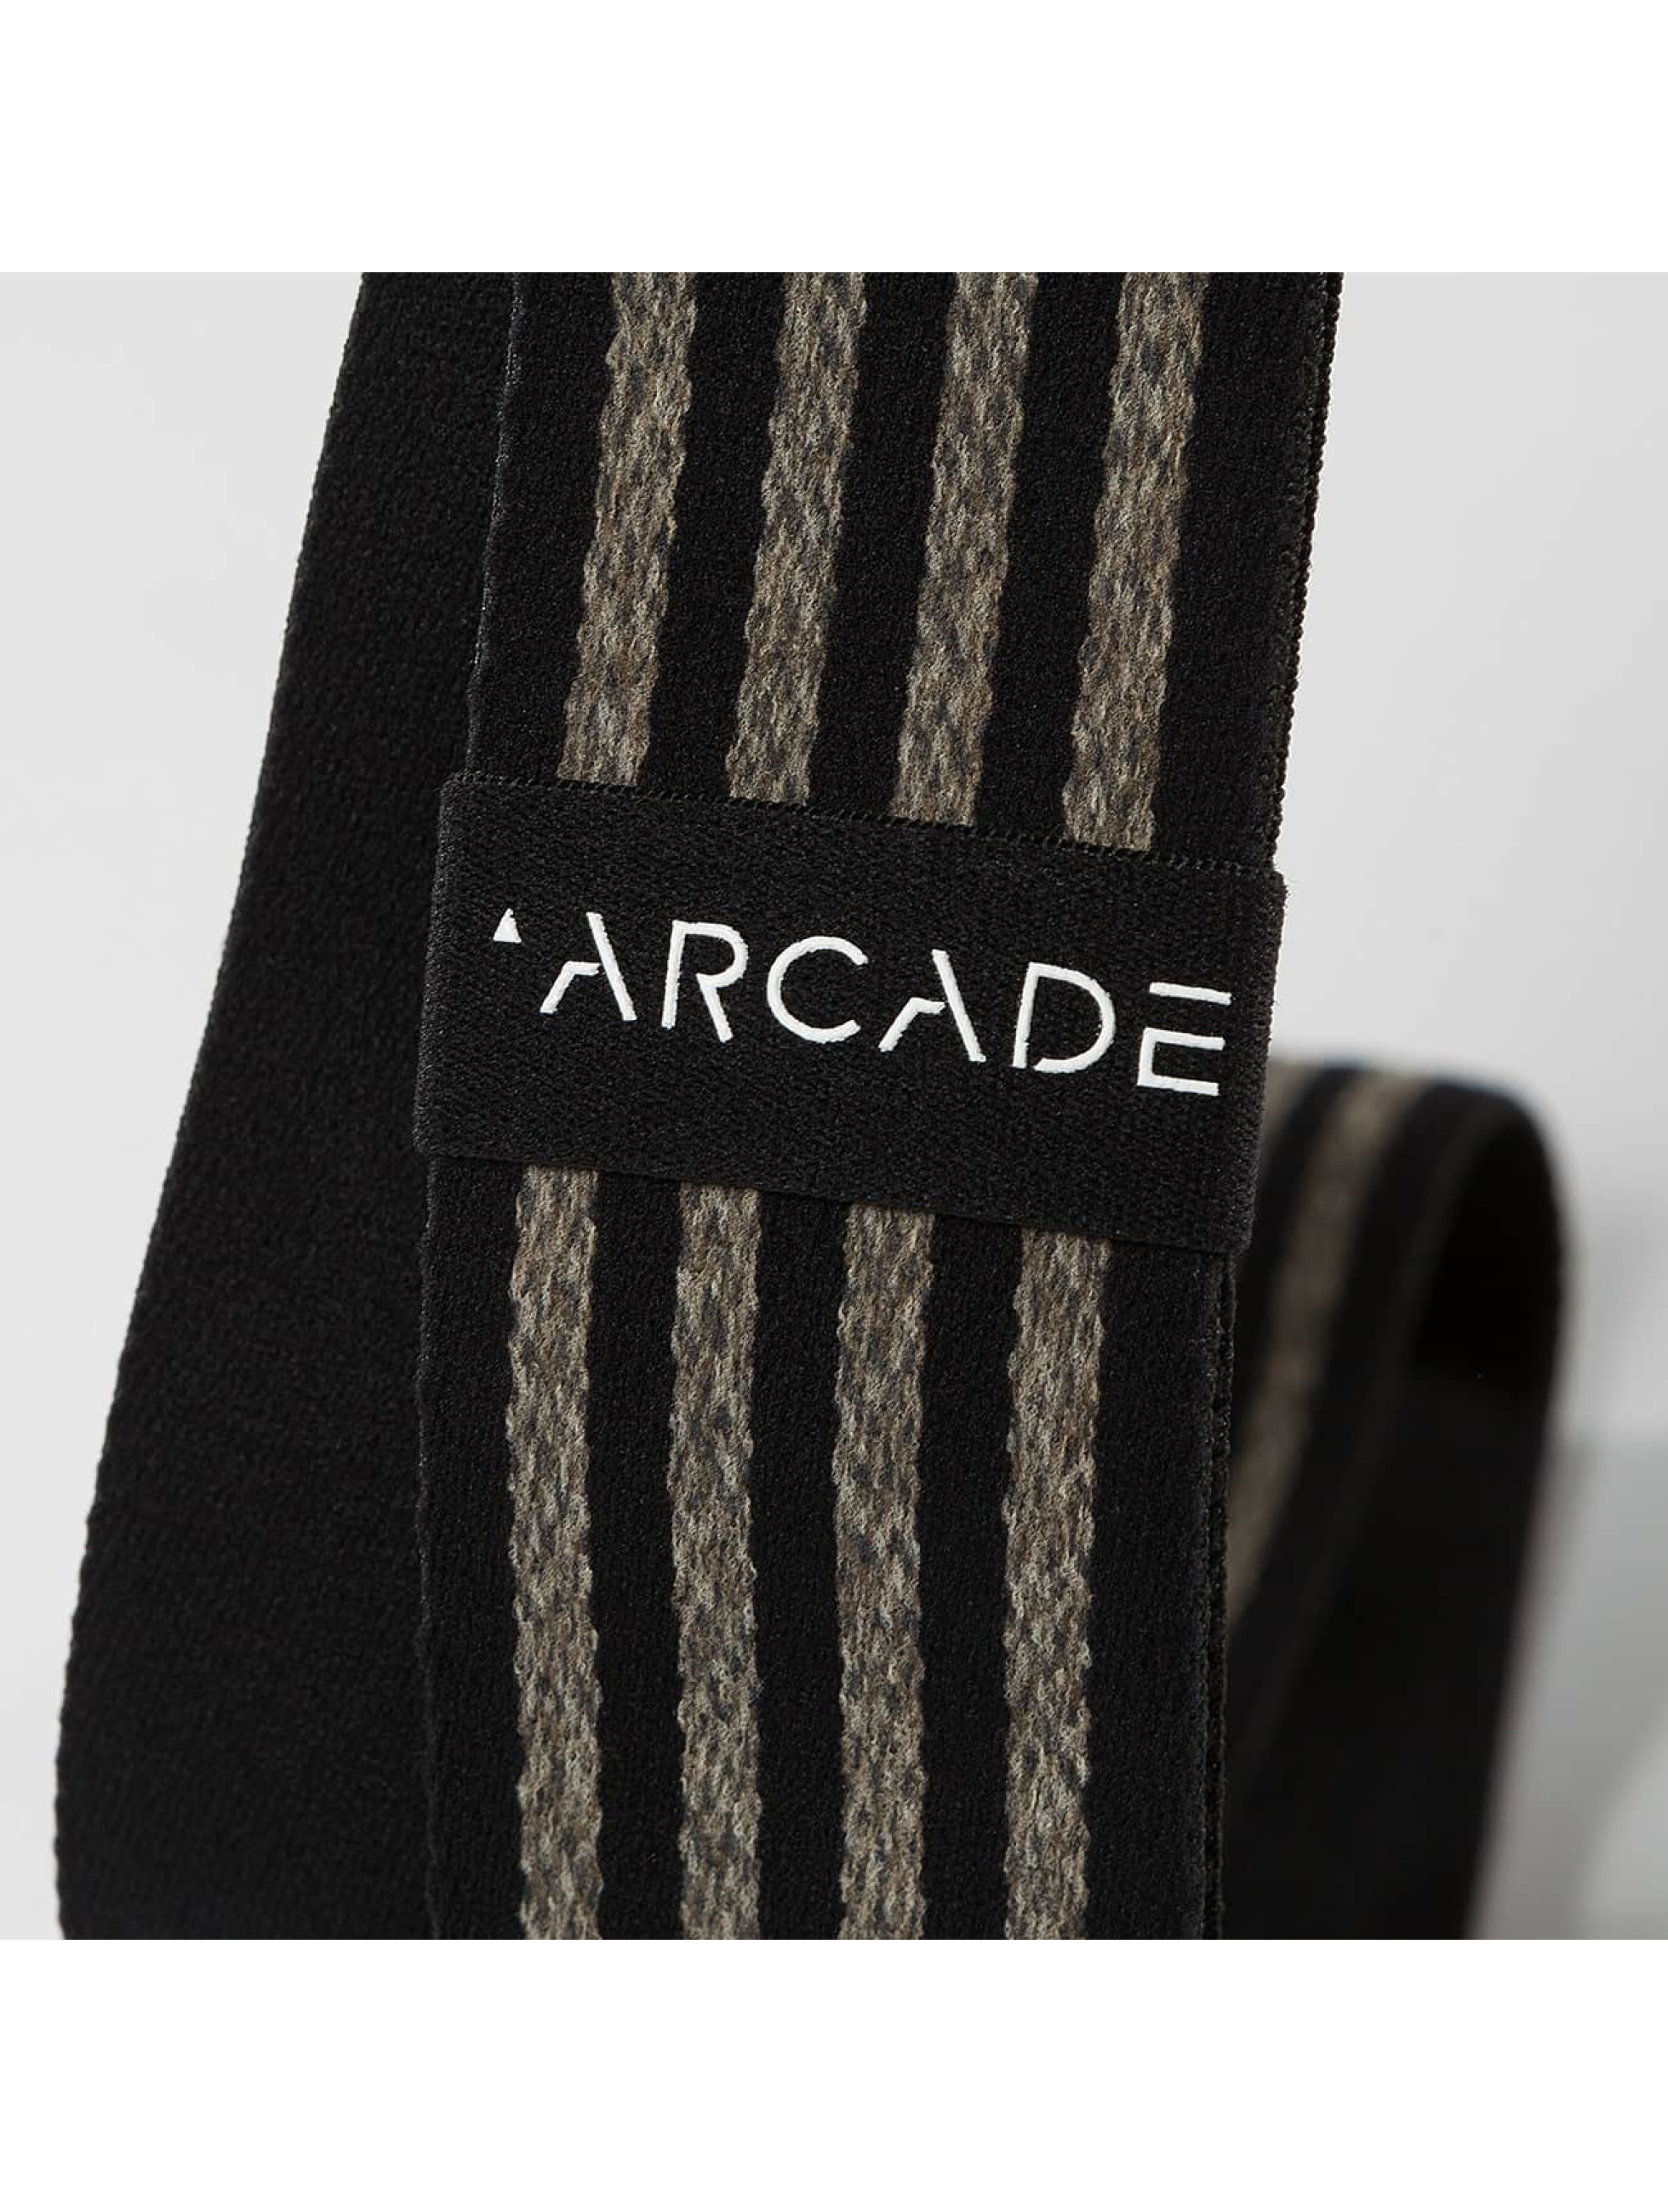 ARCADE Belts Tech Collection Don Carlos svart